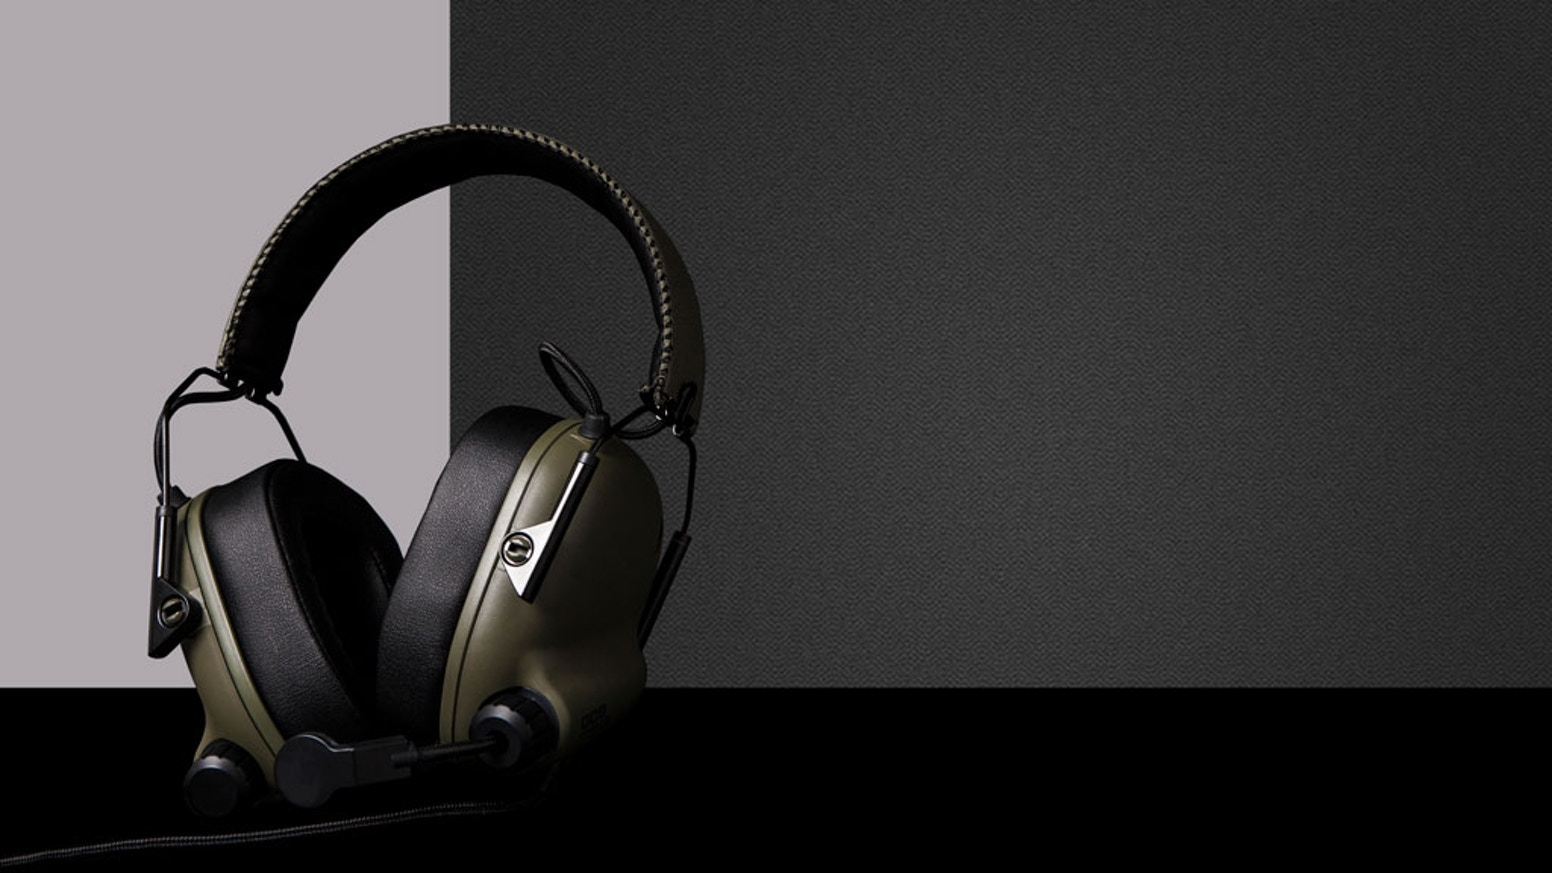 For gamers expecting a immersive sound and long-time ware comfort